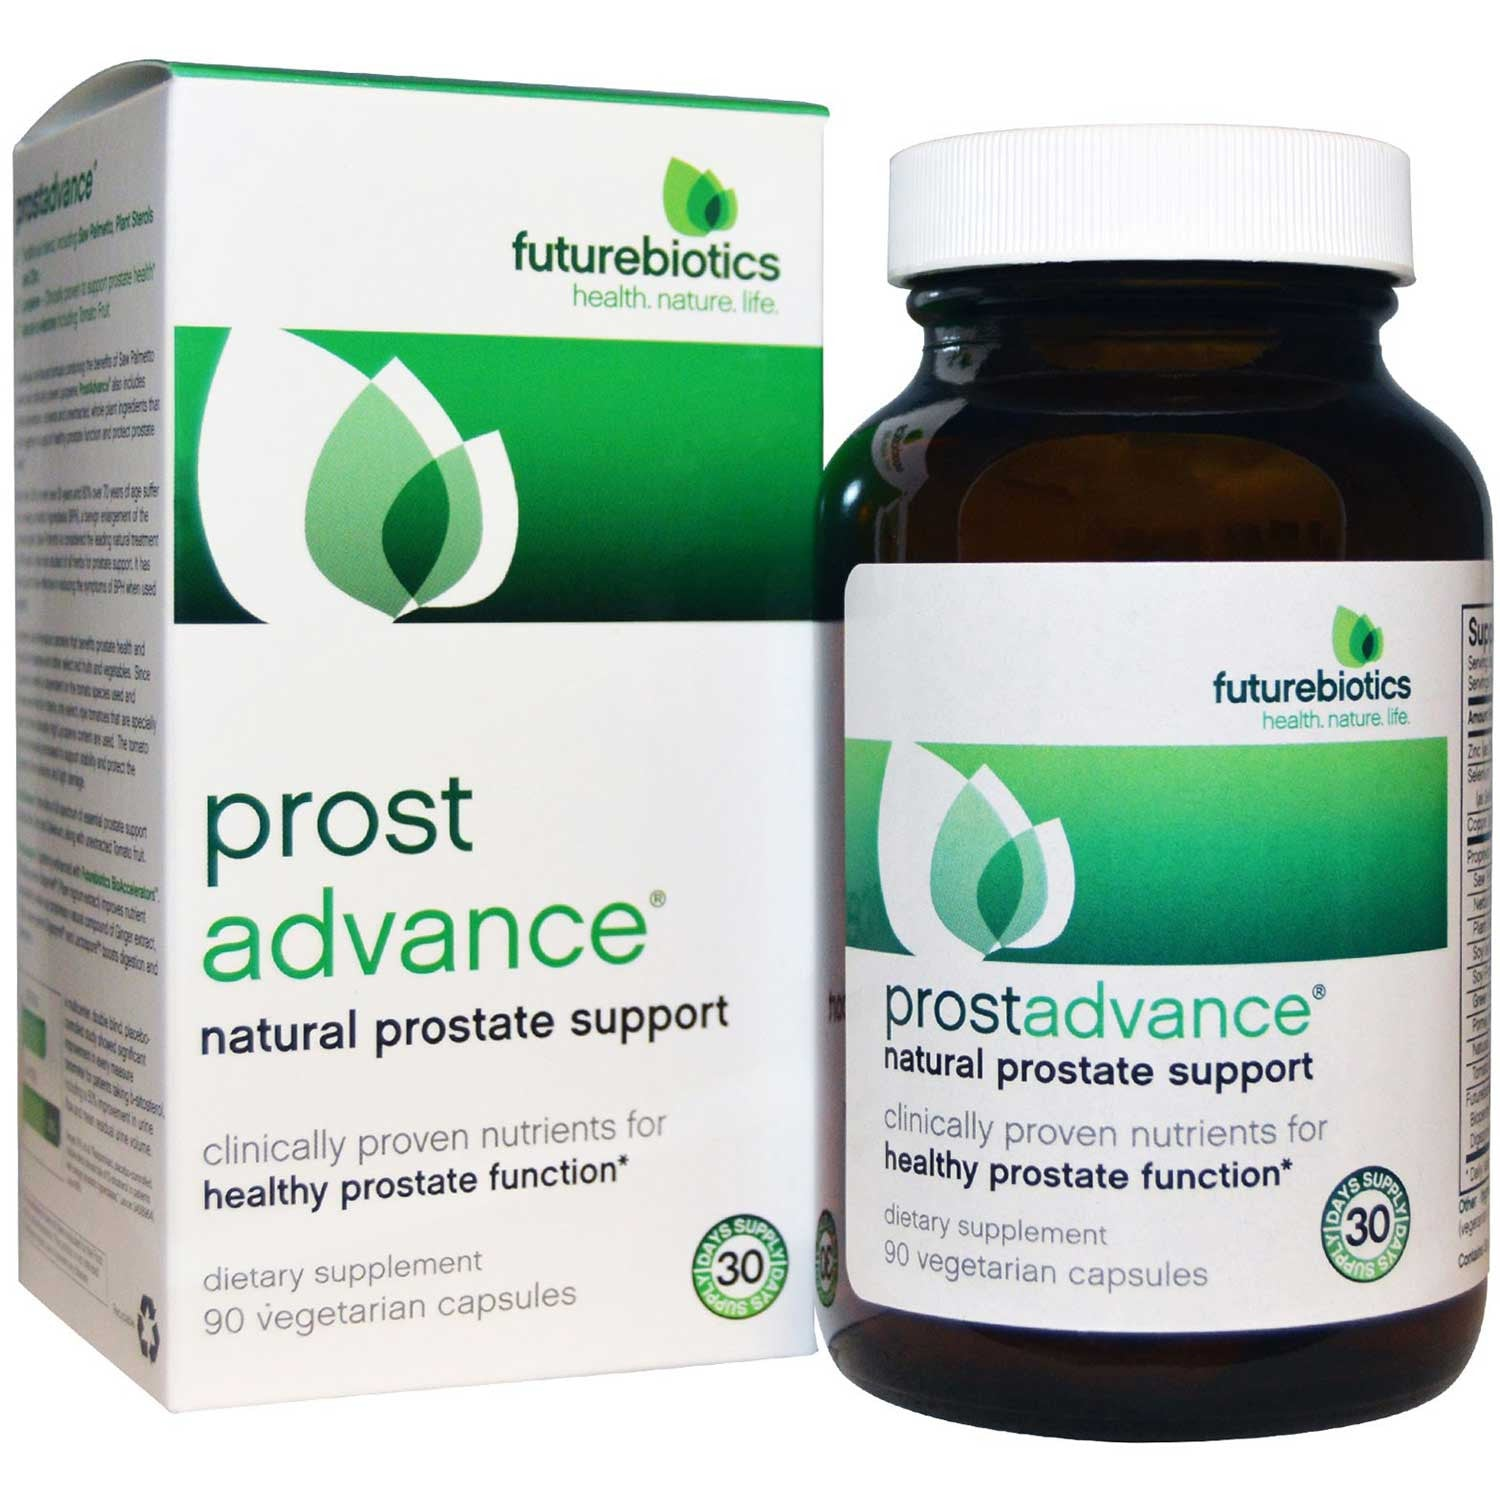 Futurebiotics ProstAdvance, 90 vcaps.-NaturesWisdom